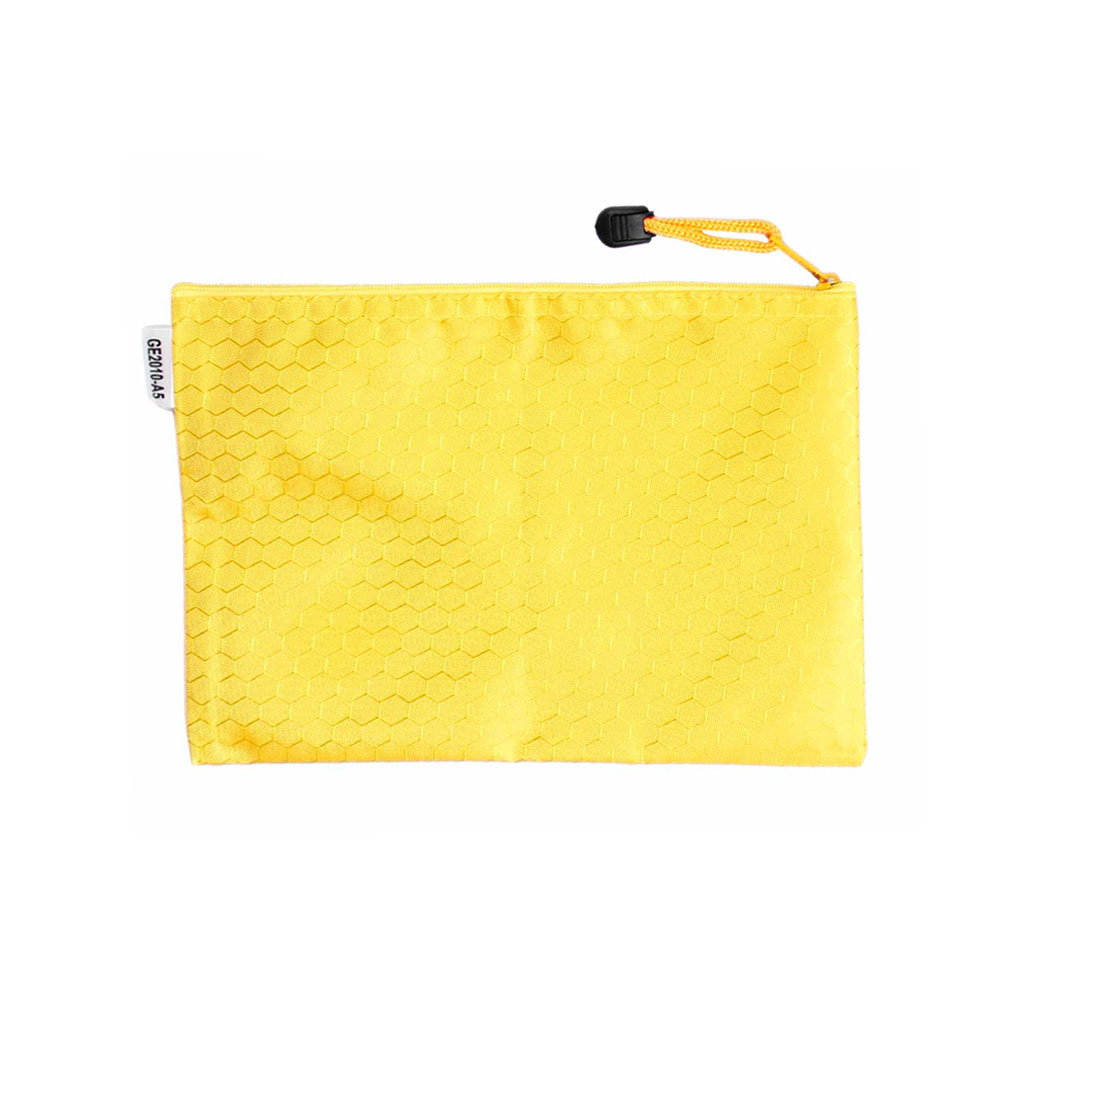 Nylon Sexangle Pattern A4 Paper Document Files Organizer Bag Yellow